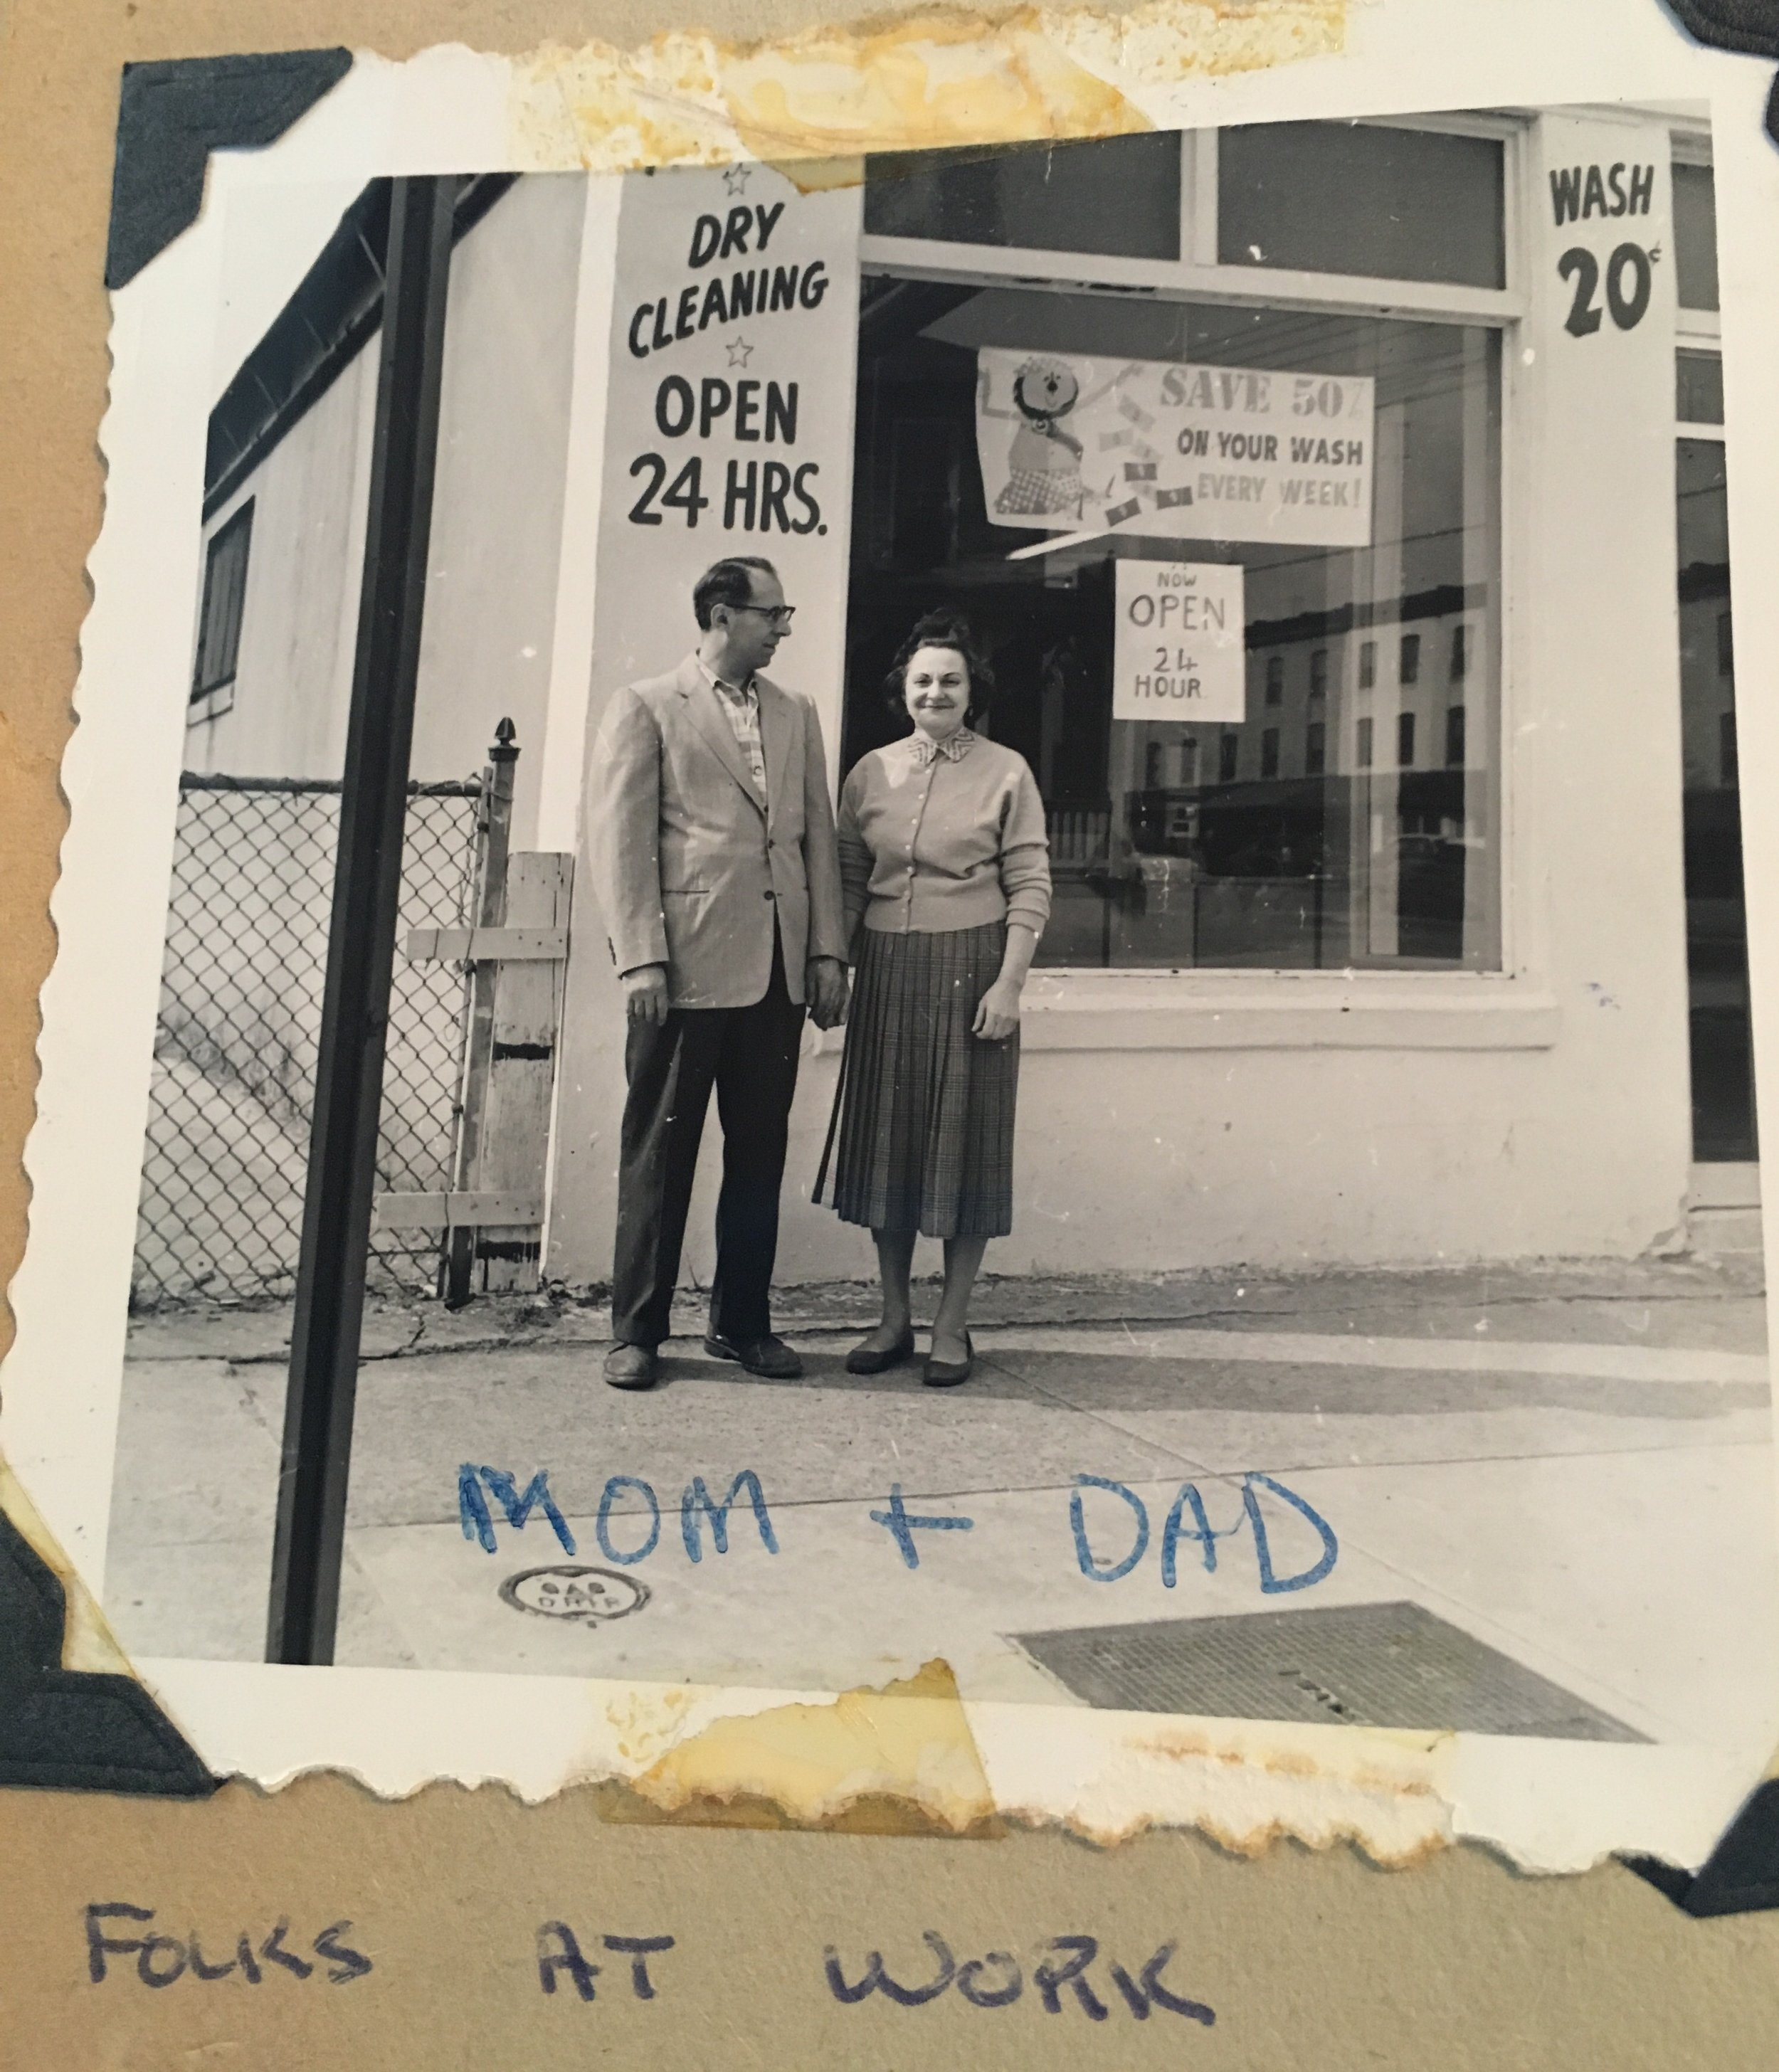 Grandpop and Grandmom Infront of their Laudromat/Dry Cleaner. The definition of a self made man, Grandpop even built his own building.